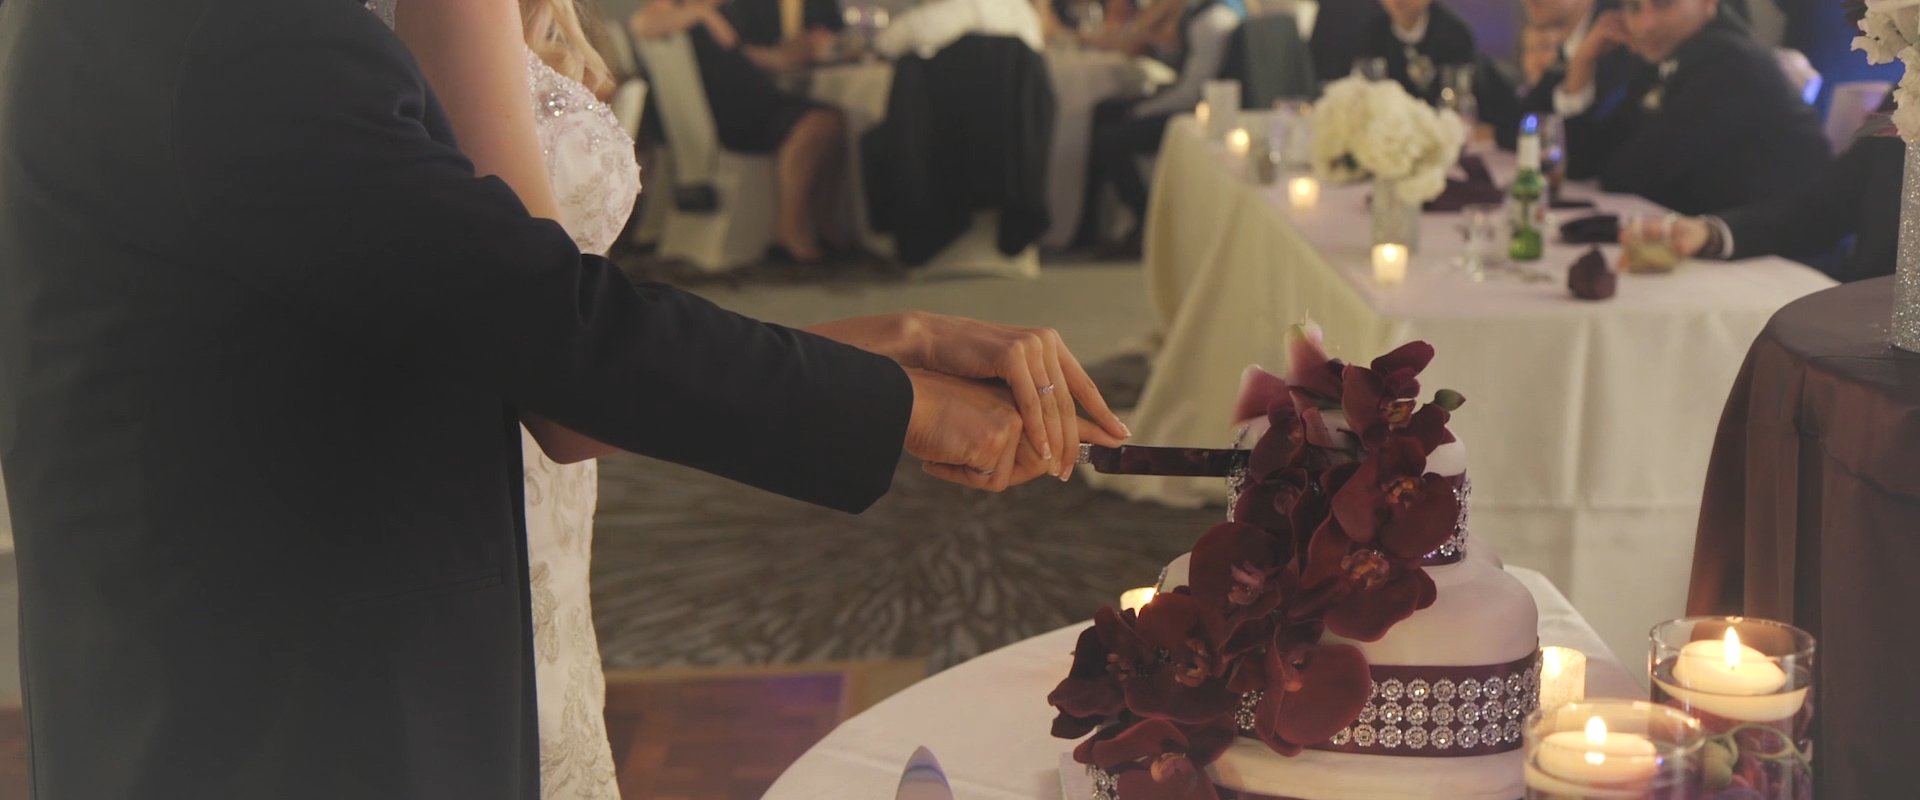 An image of a bride and groom cutting their wedding cake; taken from a Toronto Wedding Video